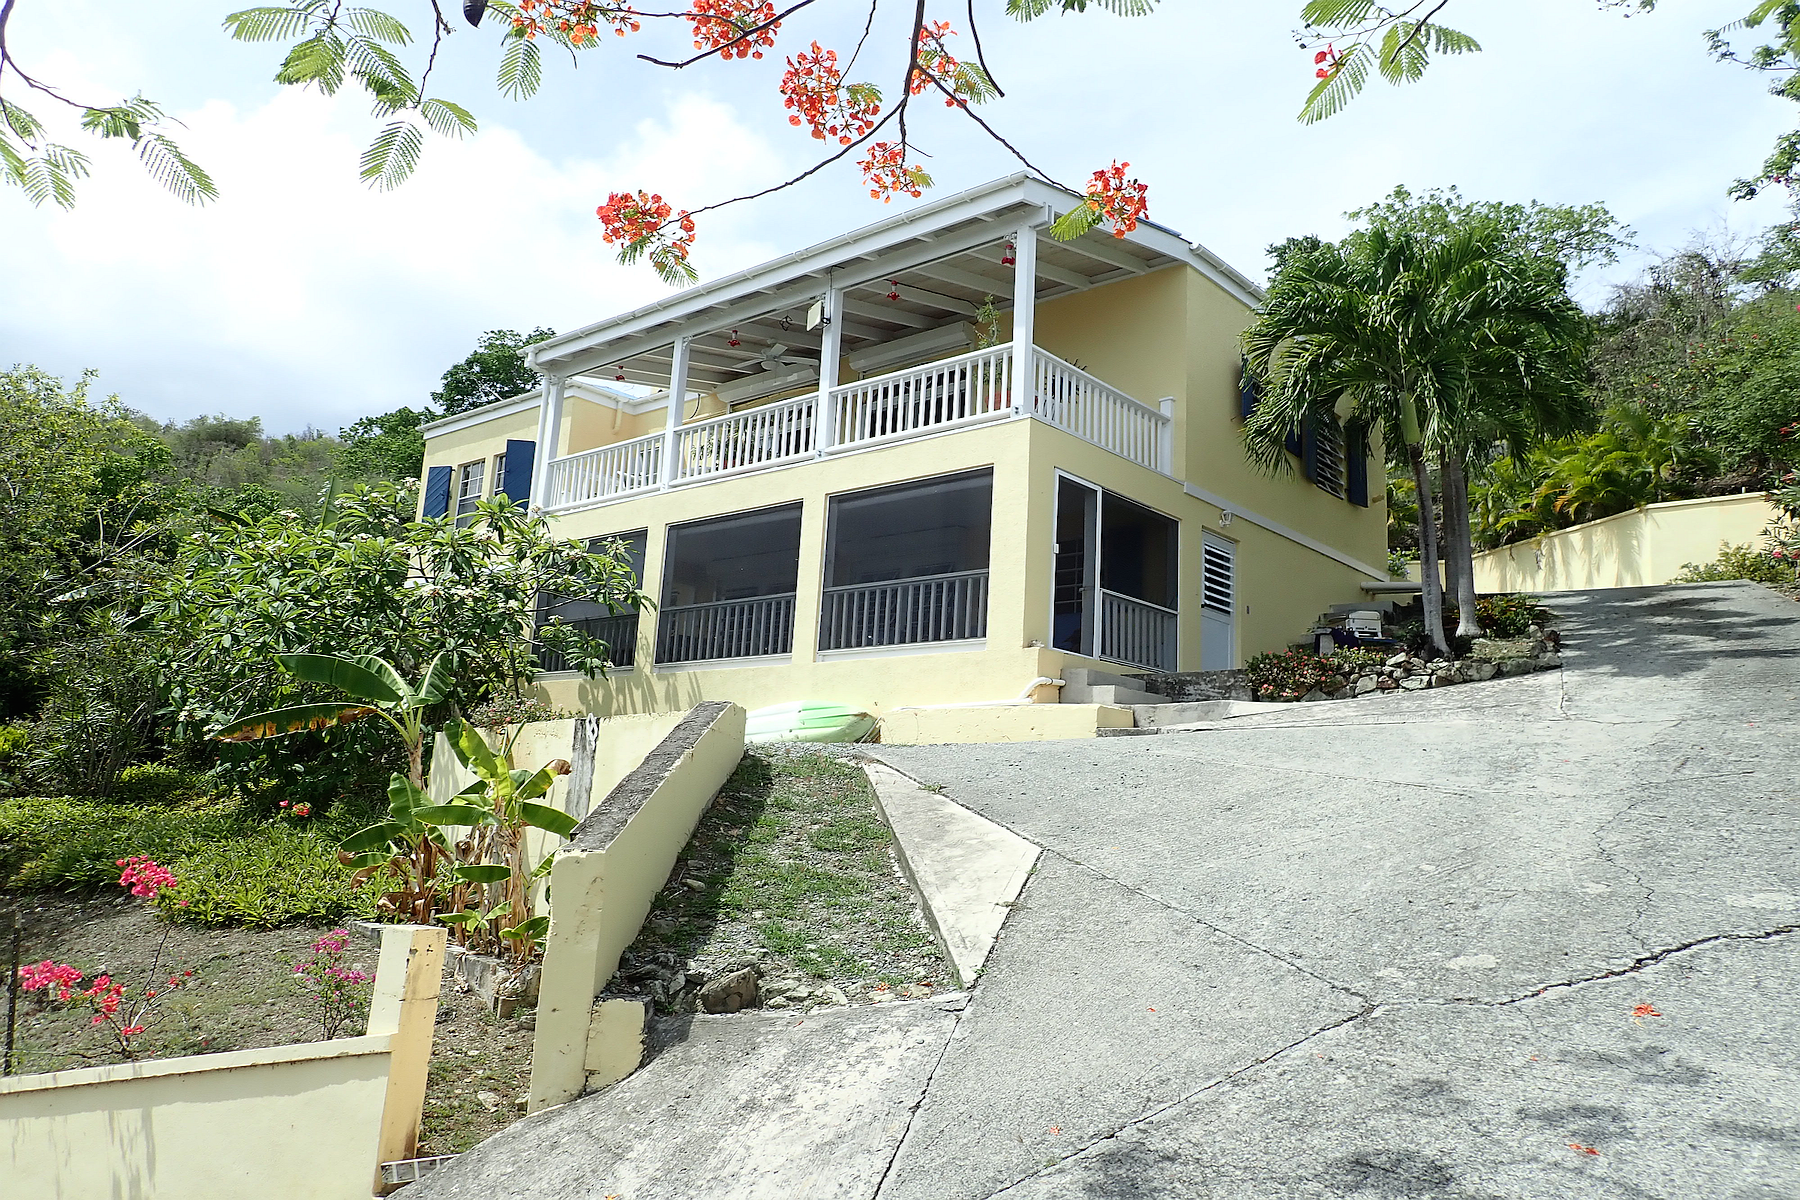 Multi-Family Homes at Hummingbird Pastory View 3-7 Remainder Pastory St John, Virgin Islands 00830 United States Virgin Islands